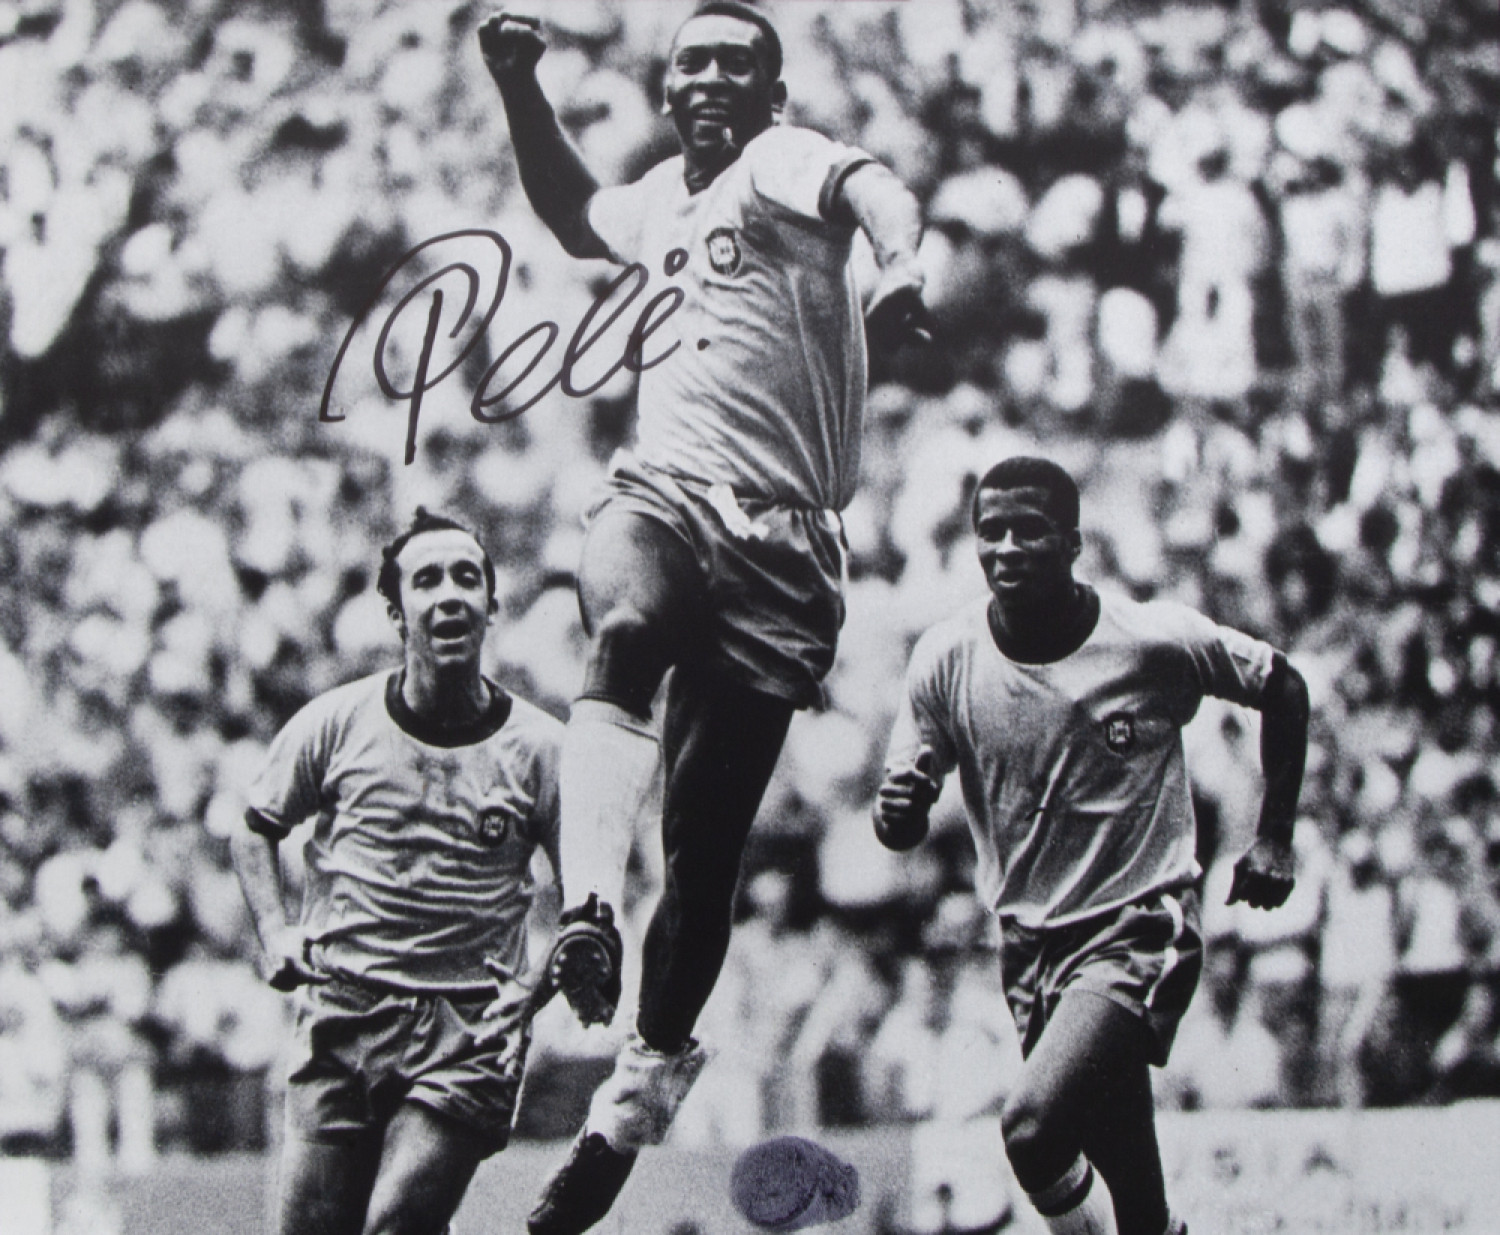 A signed photograph of Pelé celebrating his goal in Brazil's 4-1 victory over Italy in the 1970 FIFA World Cup final will be among items at the auction ©Julien's Auctions